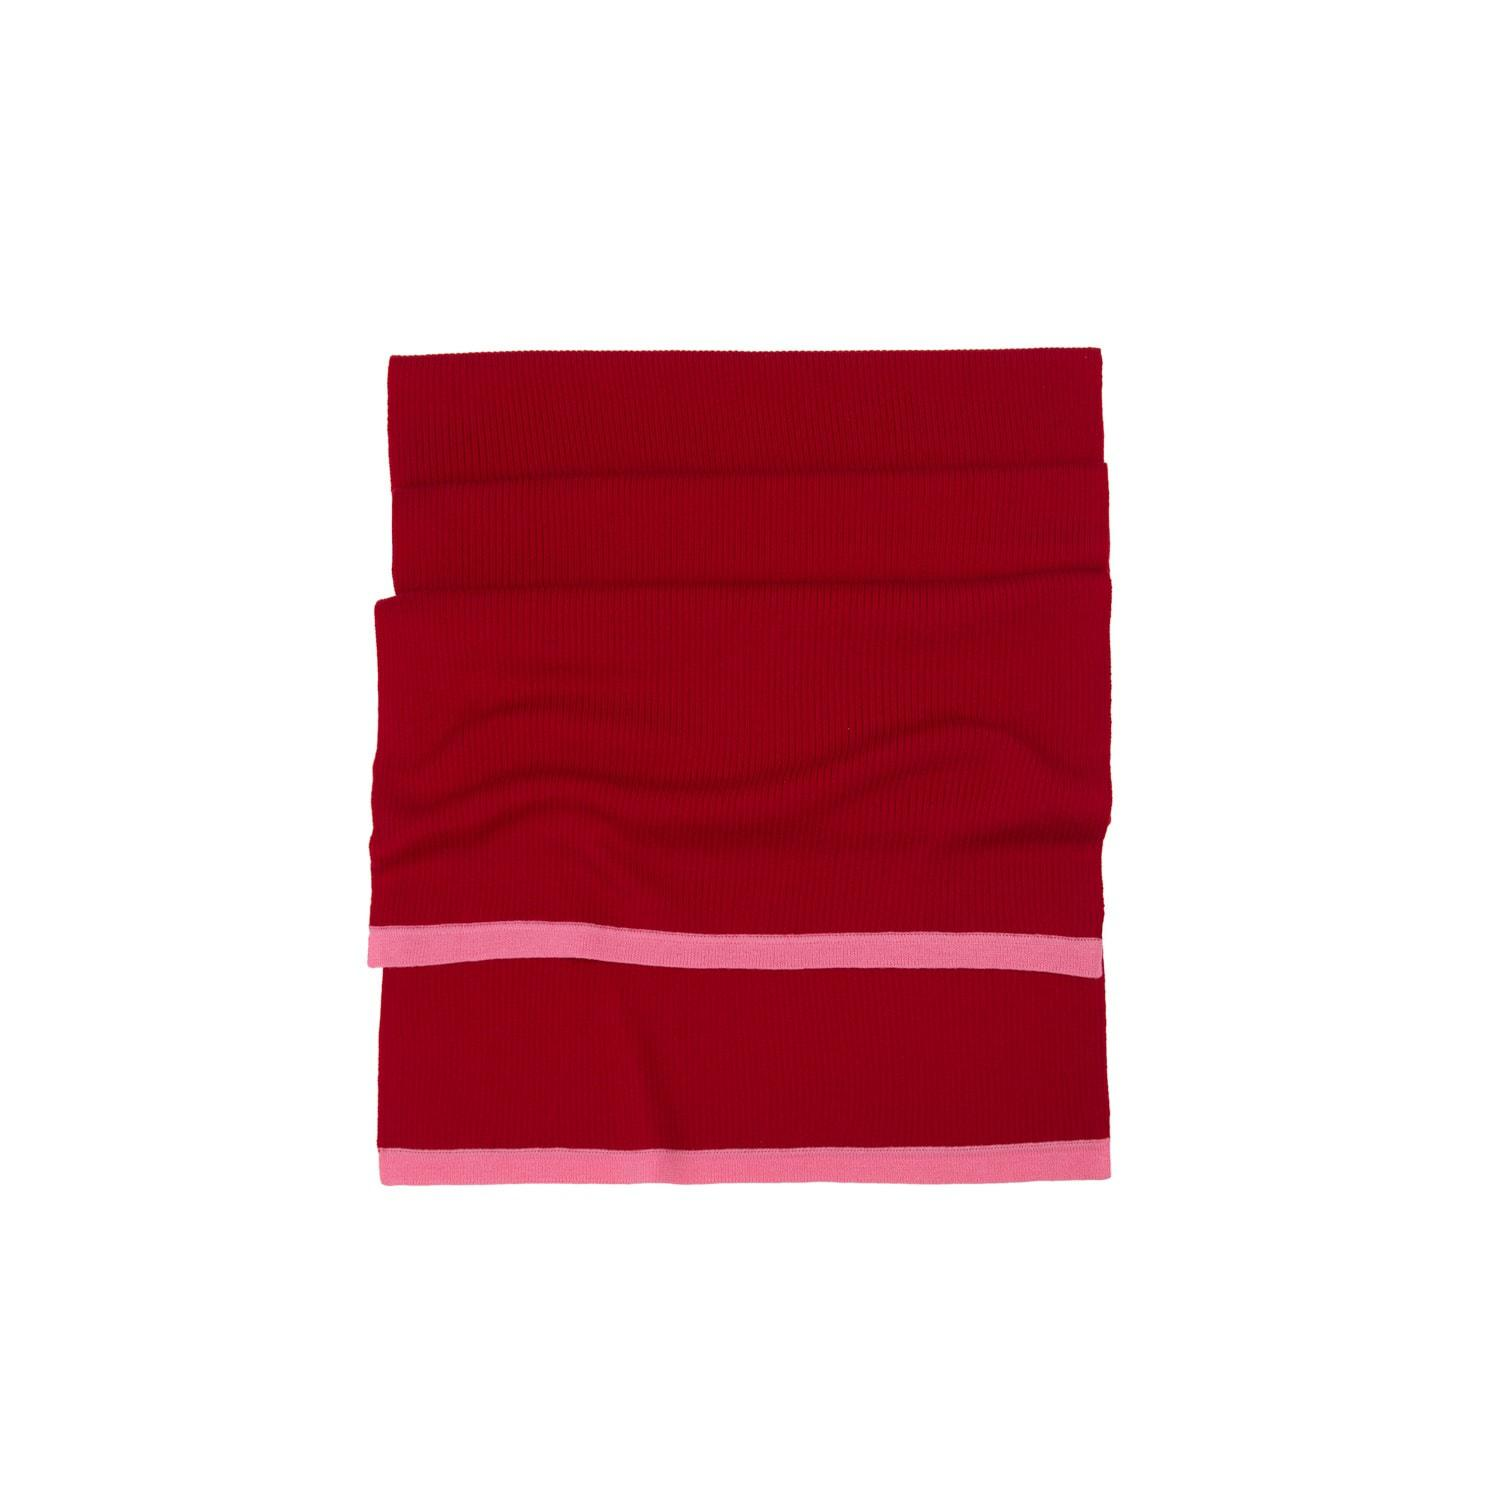 Lyst - Ille De Cocos Merino Long Scarf Cherry Red   Flamingo Pink in Red fa45f5731658